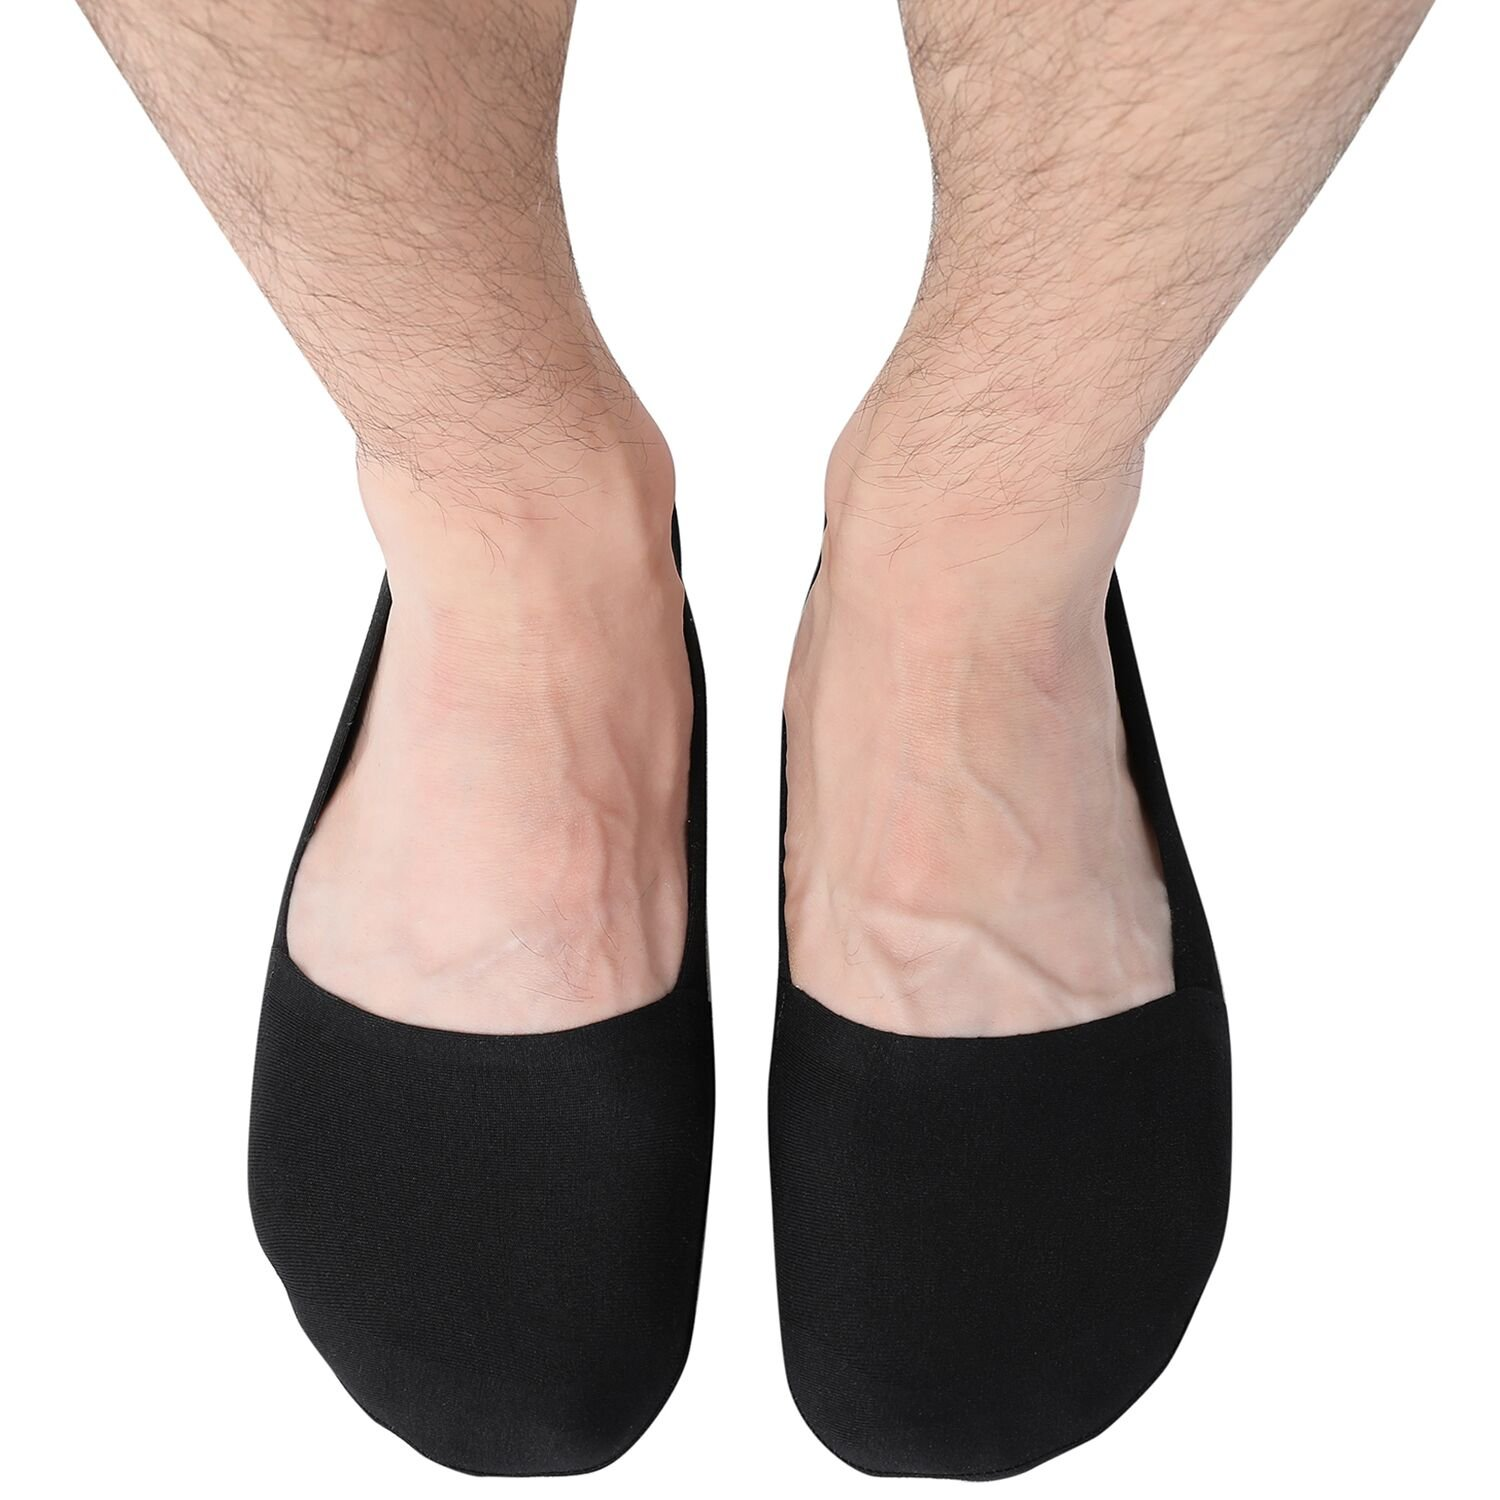 Fitrell Mens No Show Socks Non-Slip Grips Casual Boat Loafer Socks 6 Pairs,Black